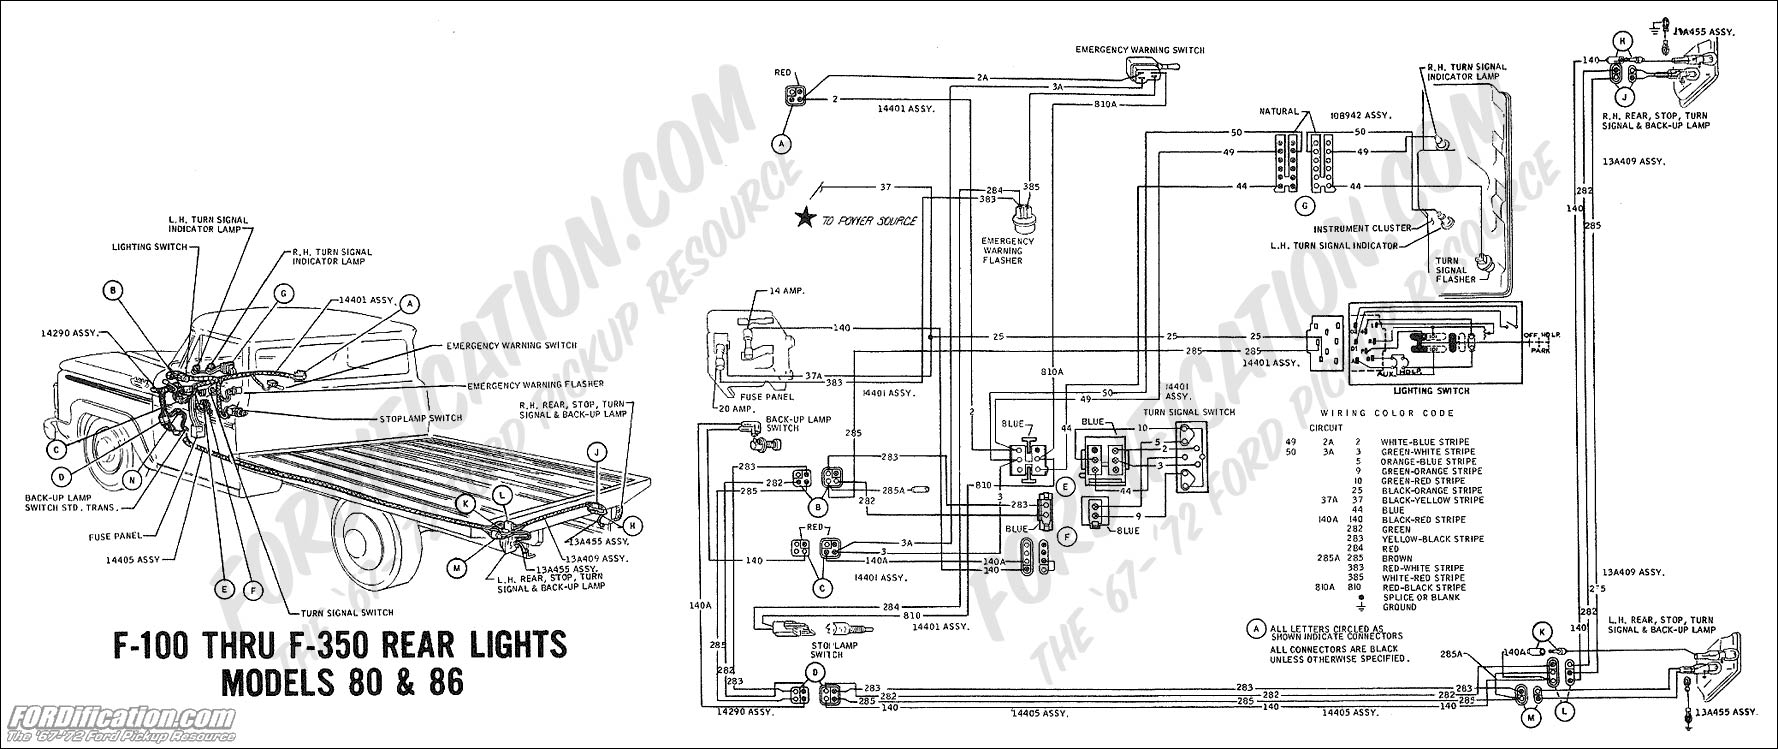 1969 Ford F 250 Turn Signal Wiring Diagram Basic Guide 1968 Engine Truck Technical Drawings And Schematics Section H Rh Fordification Com 1977 Diagrams